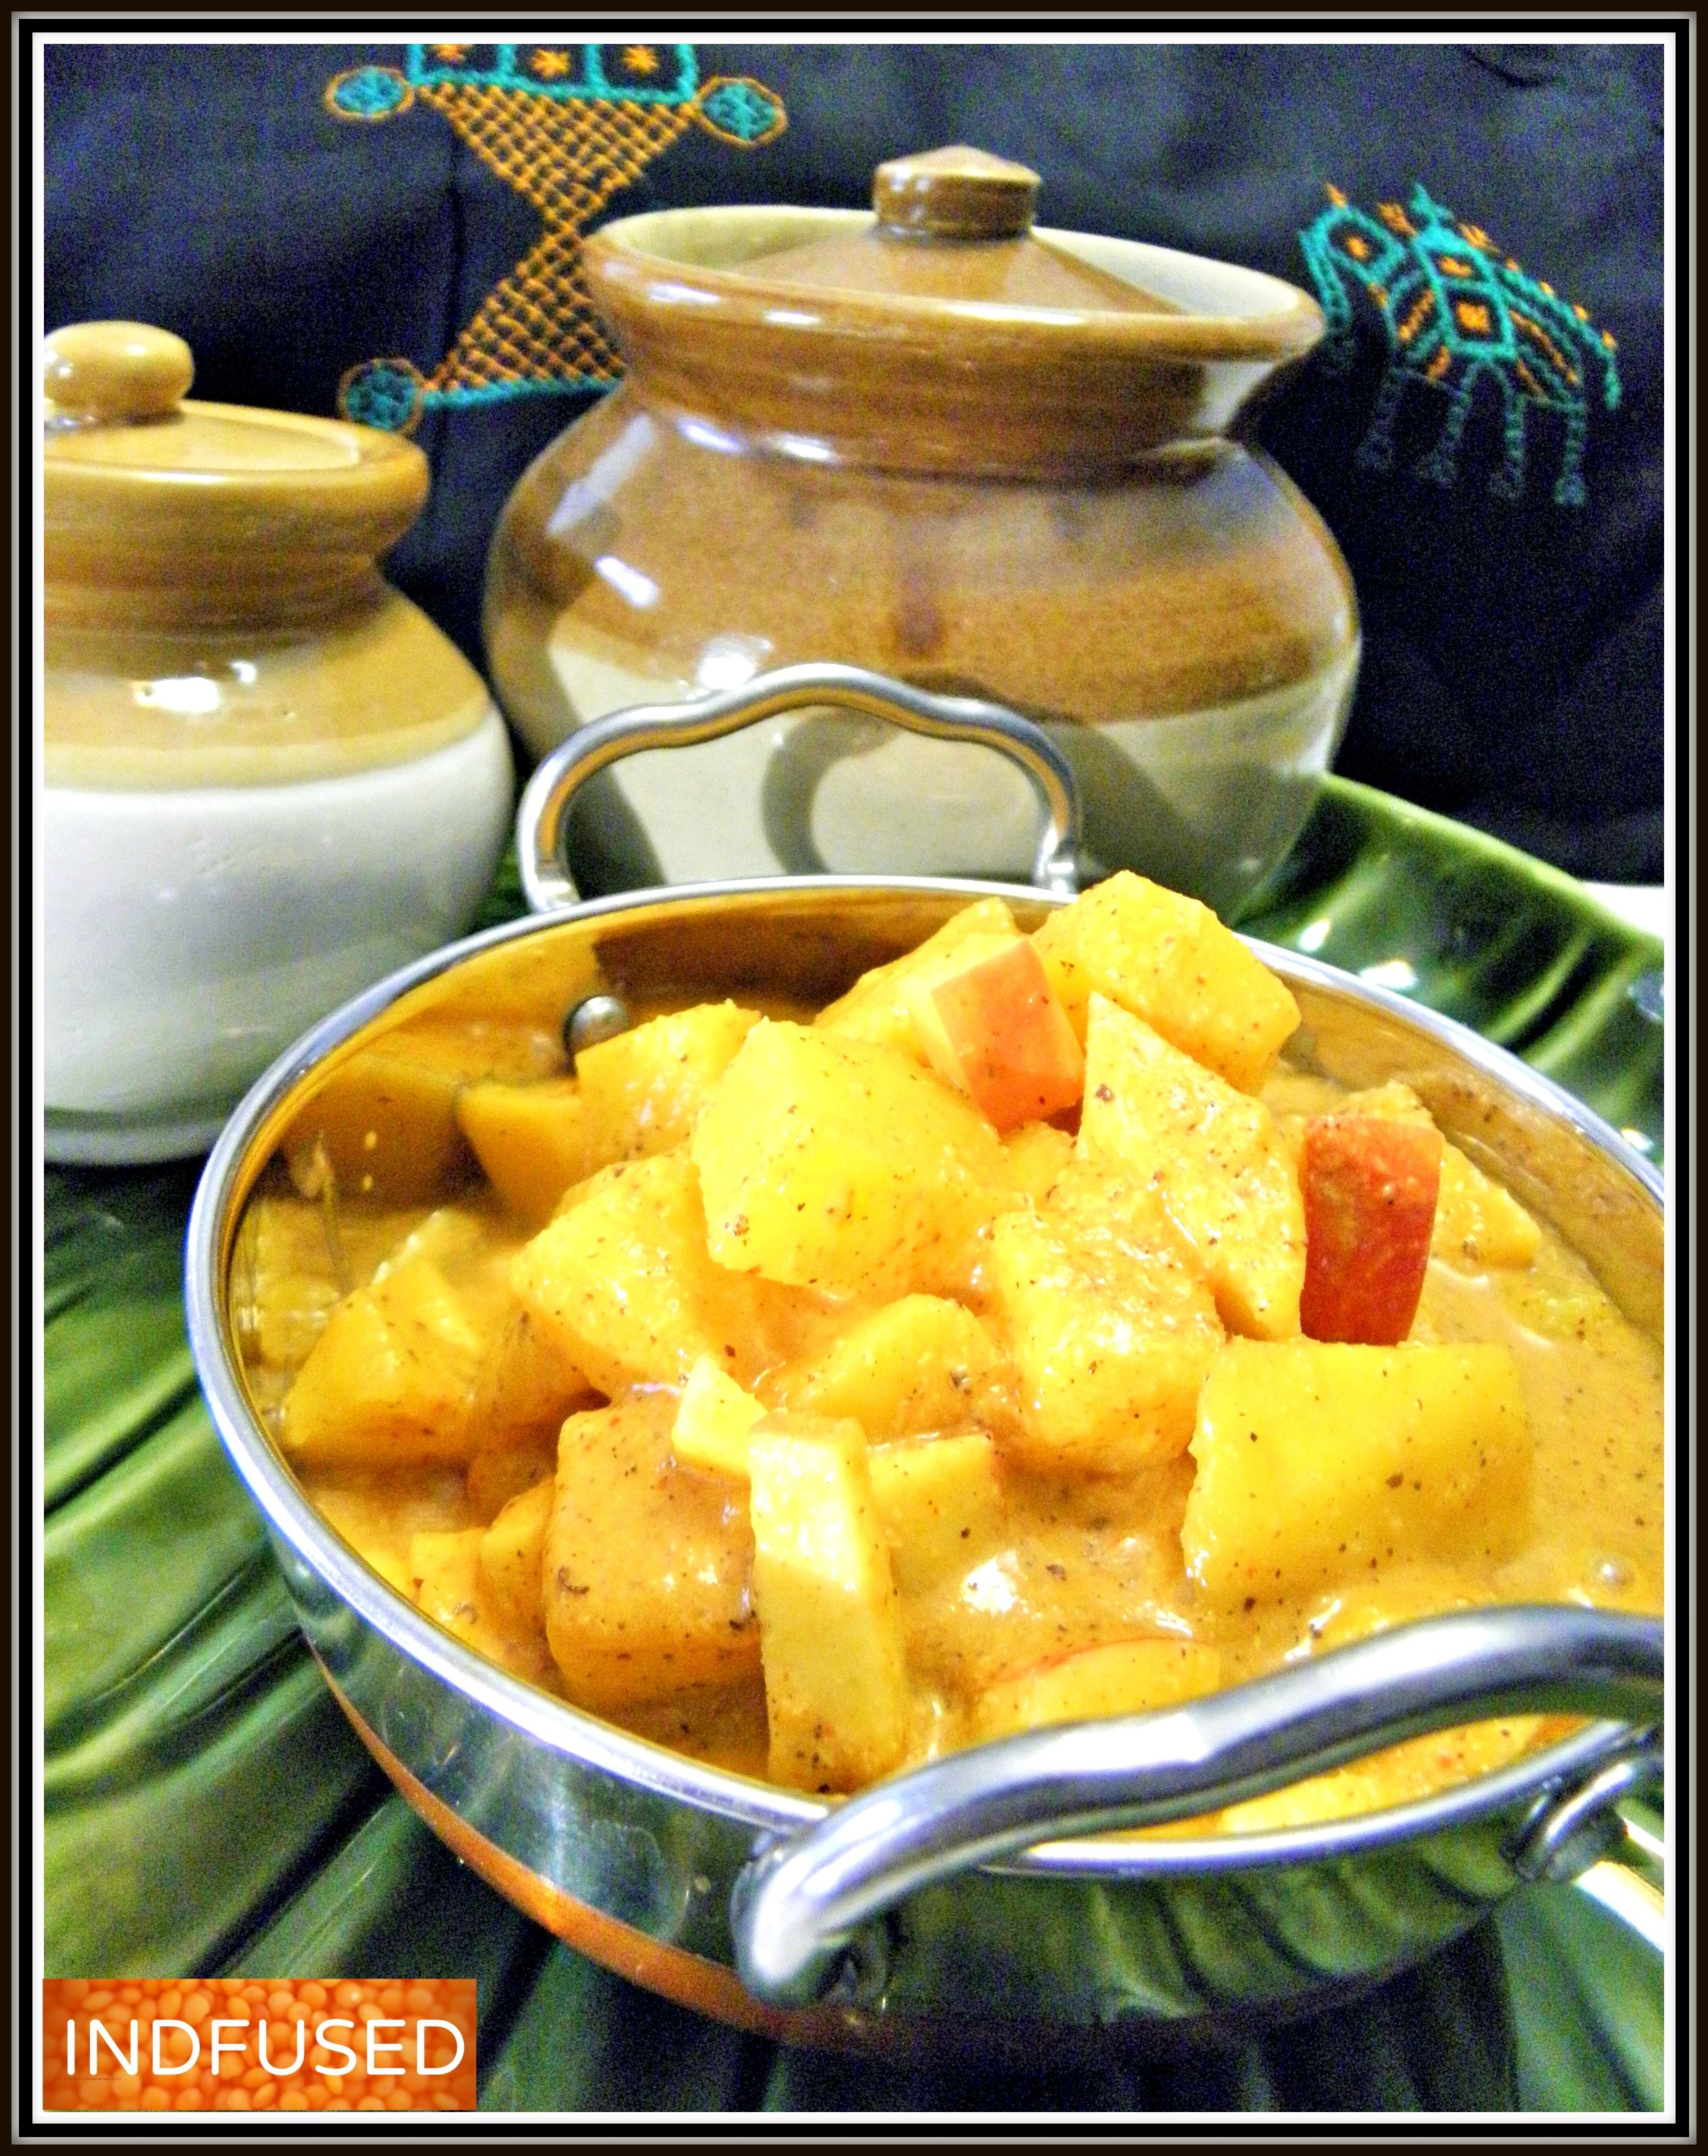 Pineapple and mango sasav an heirloom recipe recipes indian indian food recipes forumfinder Image collections